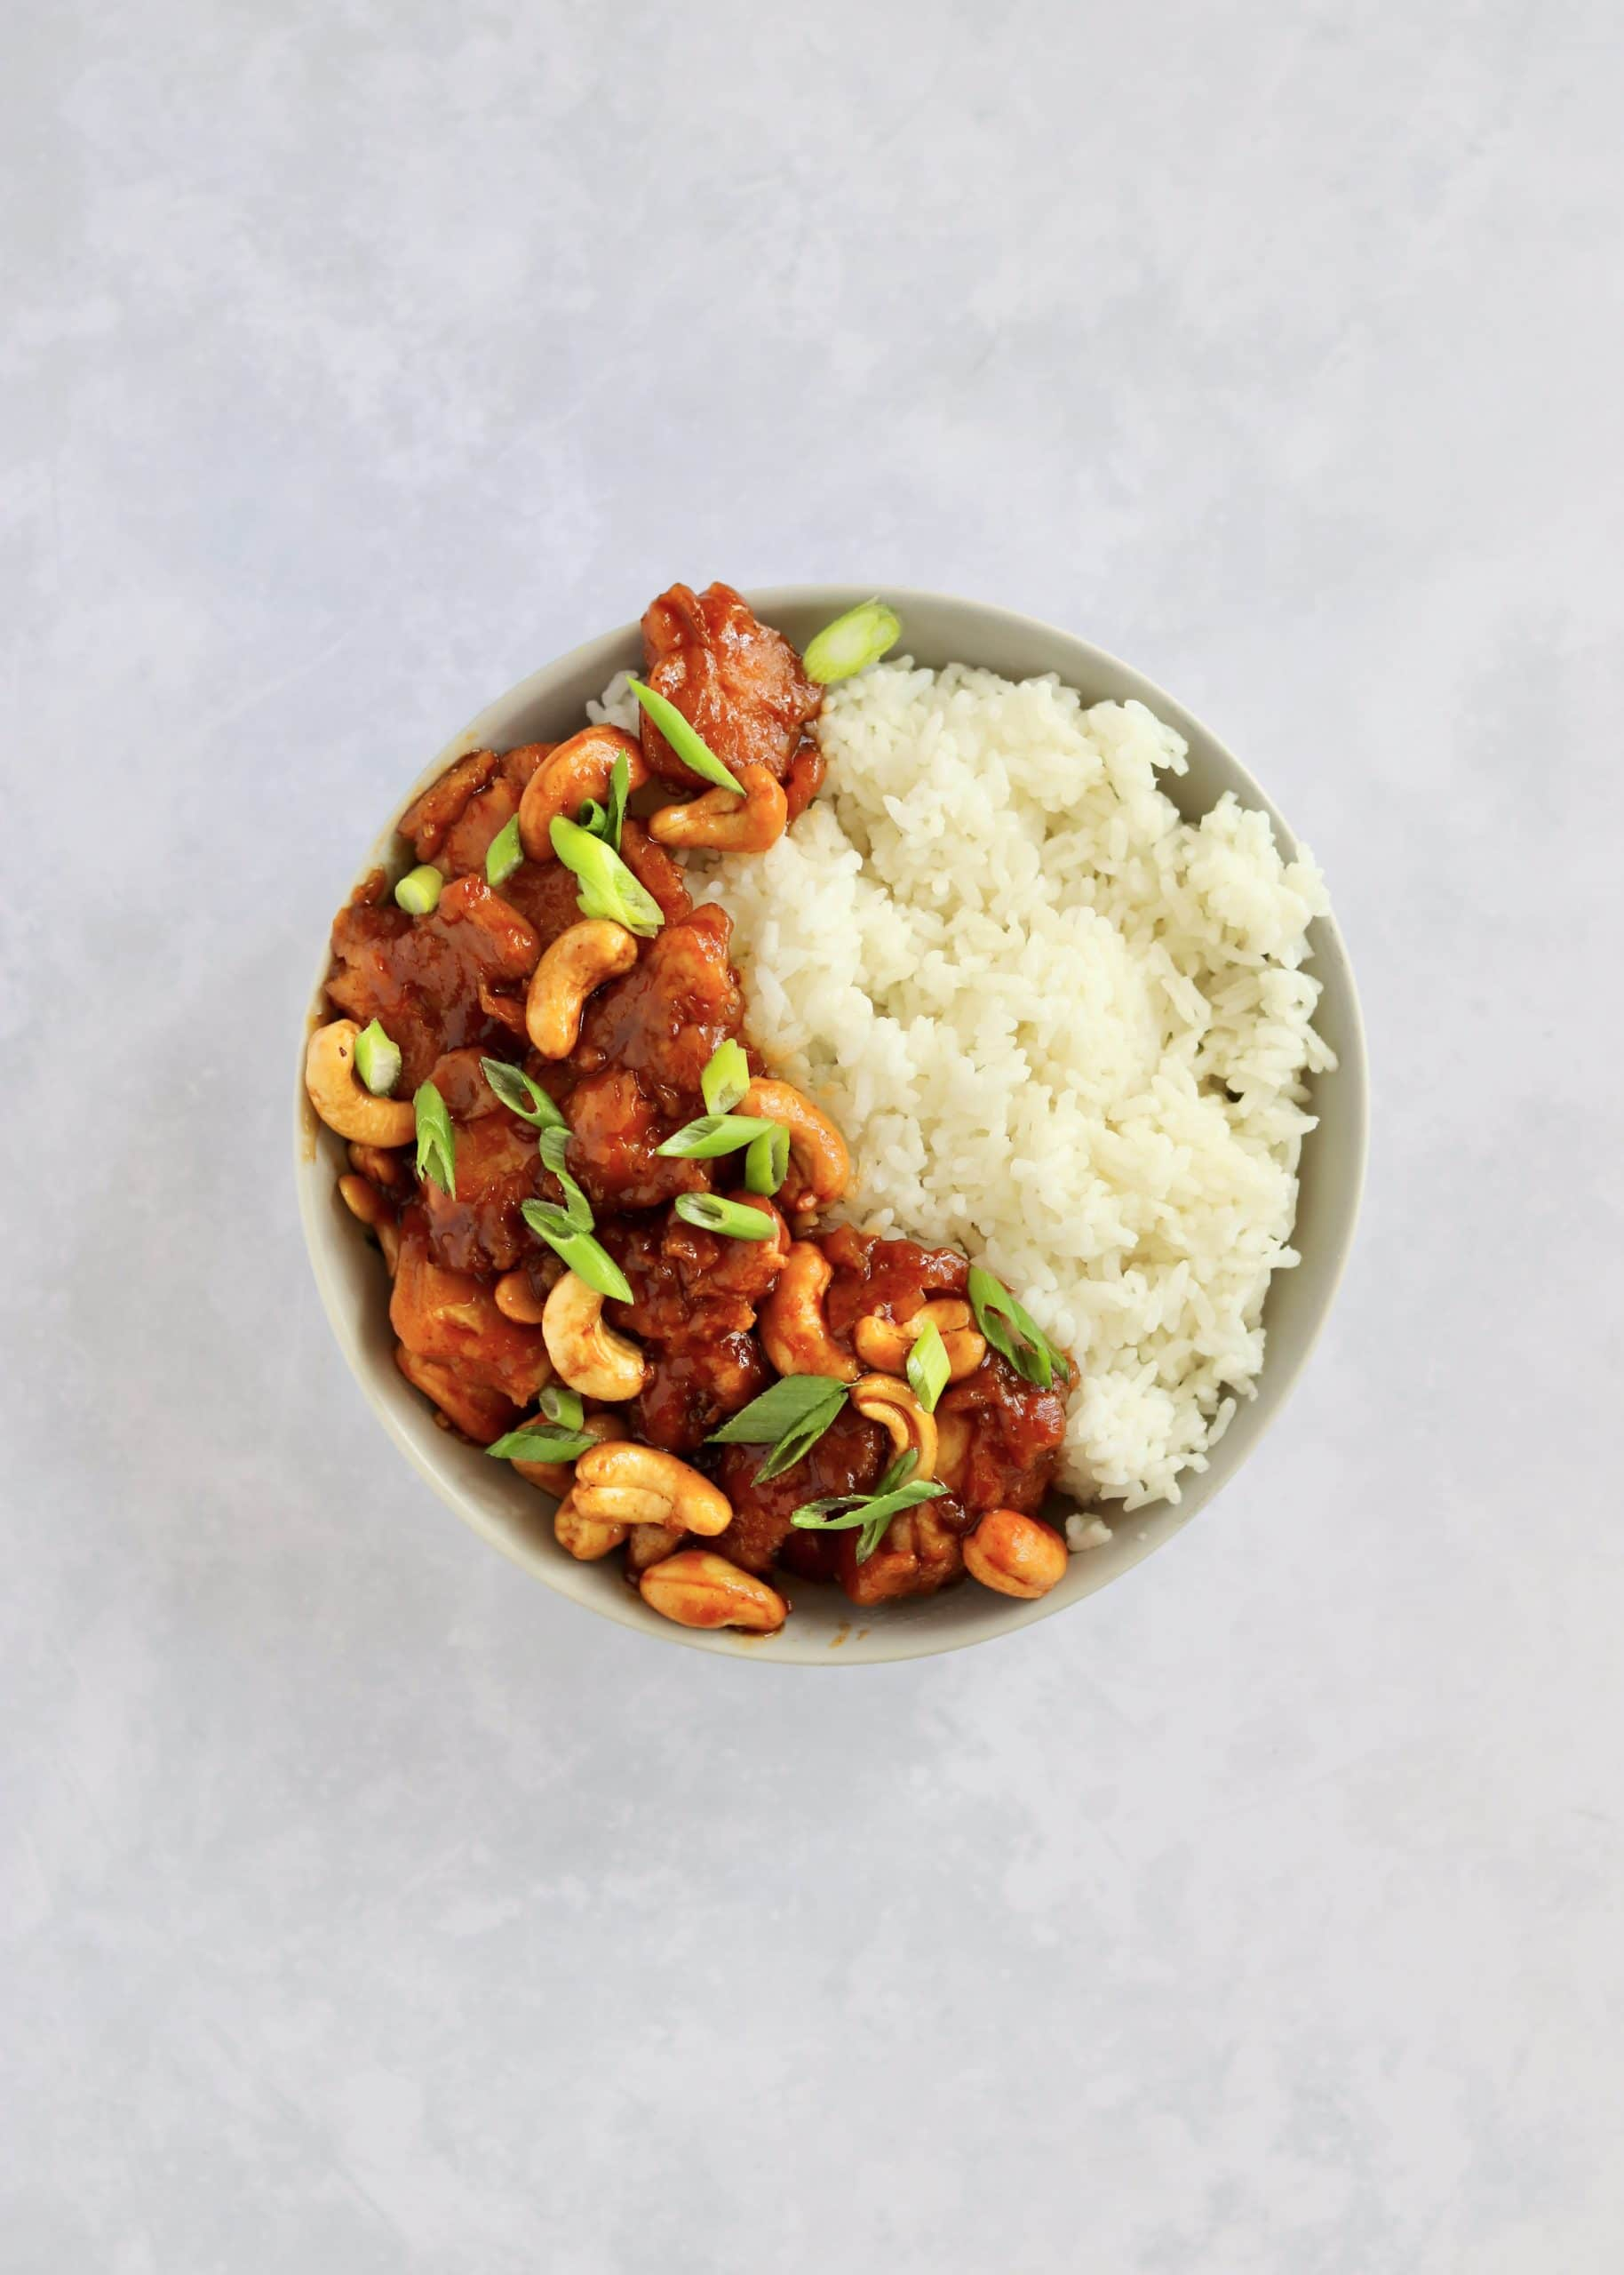 Cashew chicken with rice in a bowl